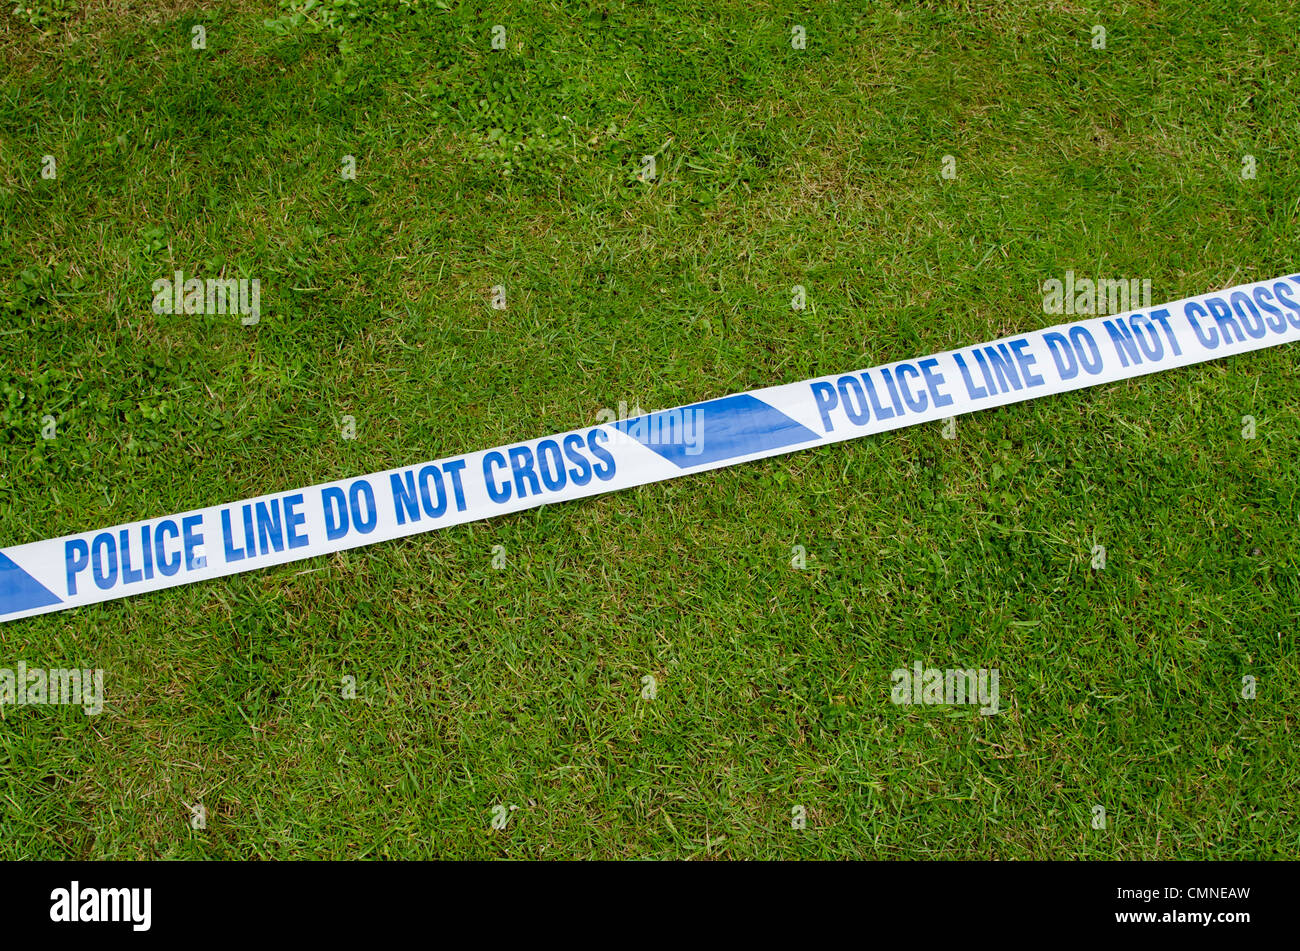 White tape with 'Police Line Do Not Cross' printed on it laying on the grass. - Stock Image